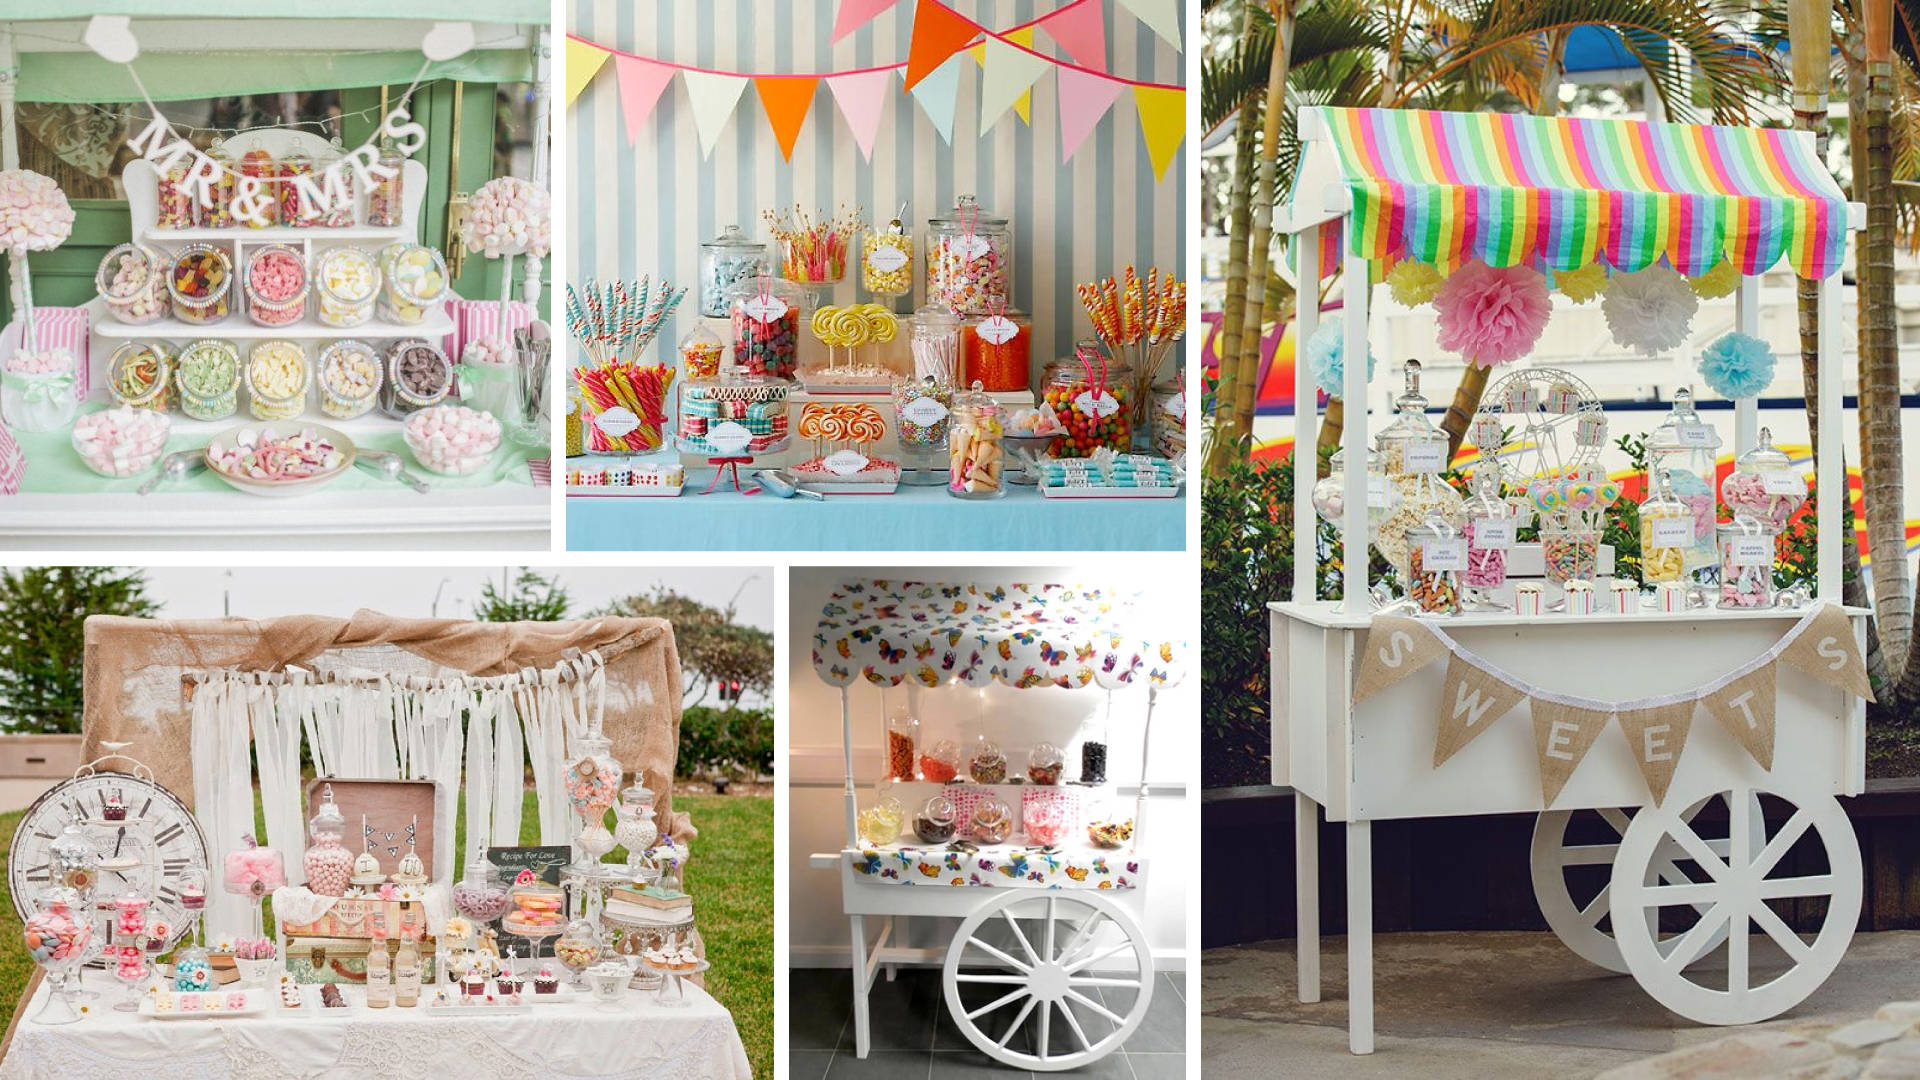 A Chocolate And Candy Stall